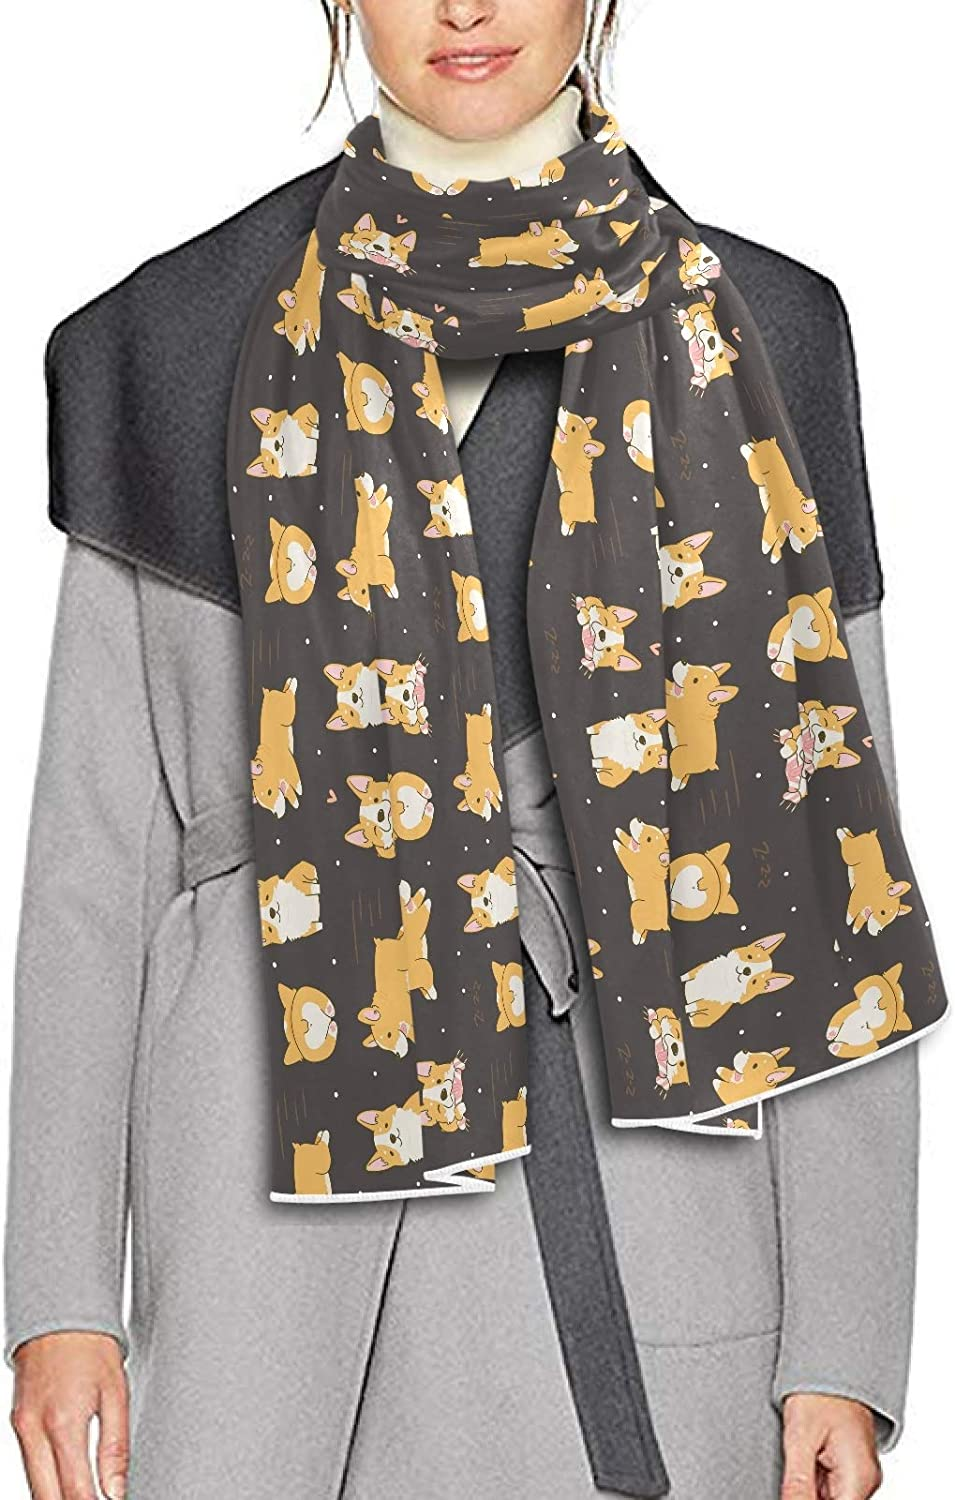 Scarf for Women and Men Corgi Cute Dogs Shawls Blanket Scarf wraps Soft Thick Winter Large Scarves Lightweight